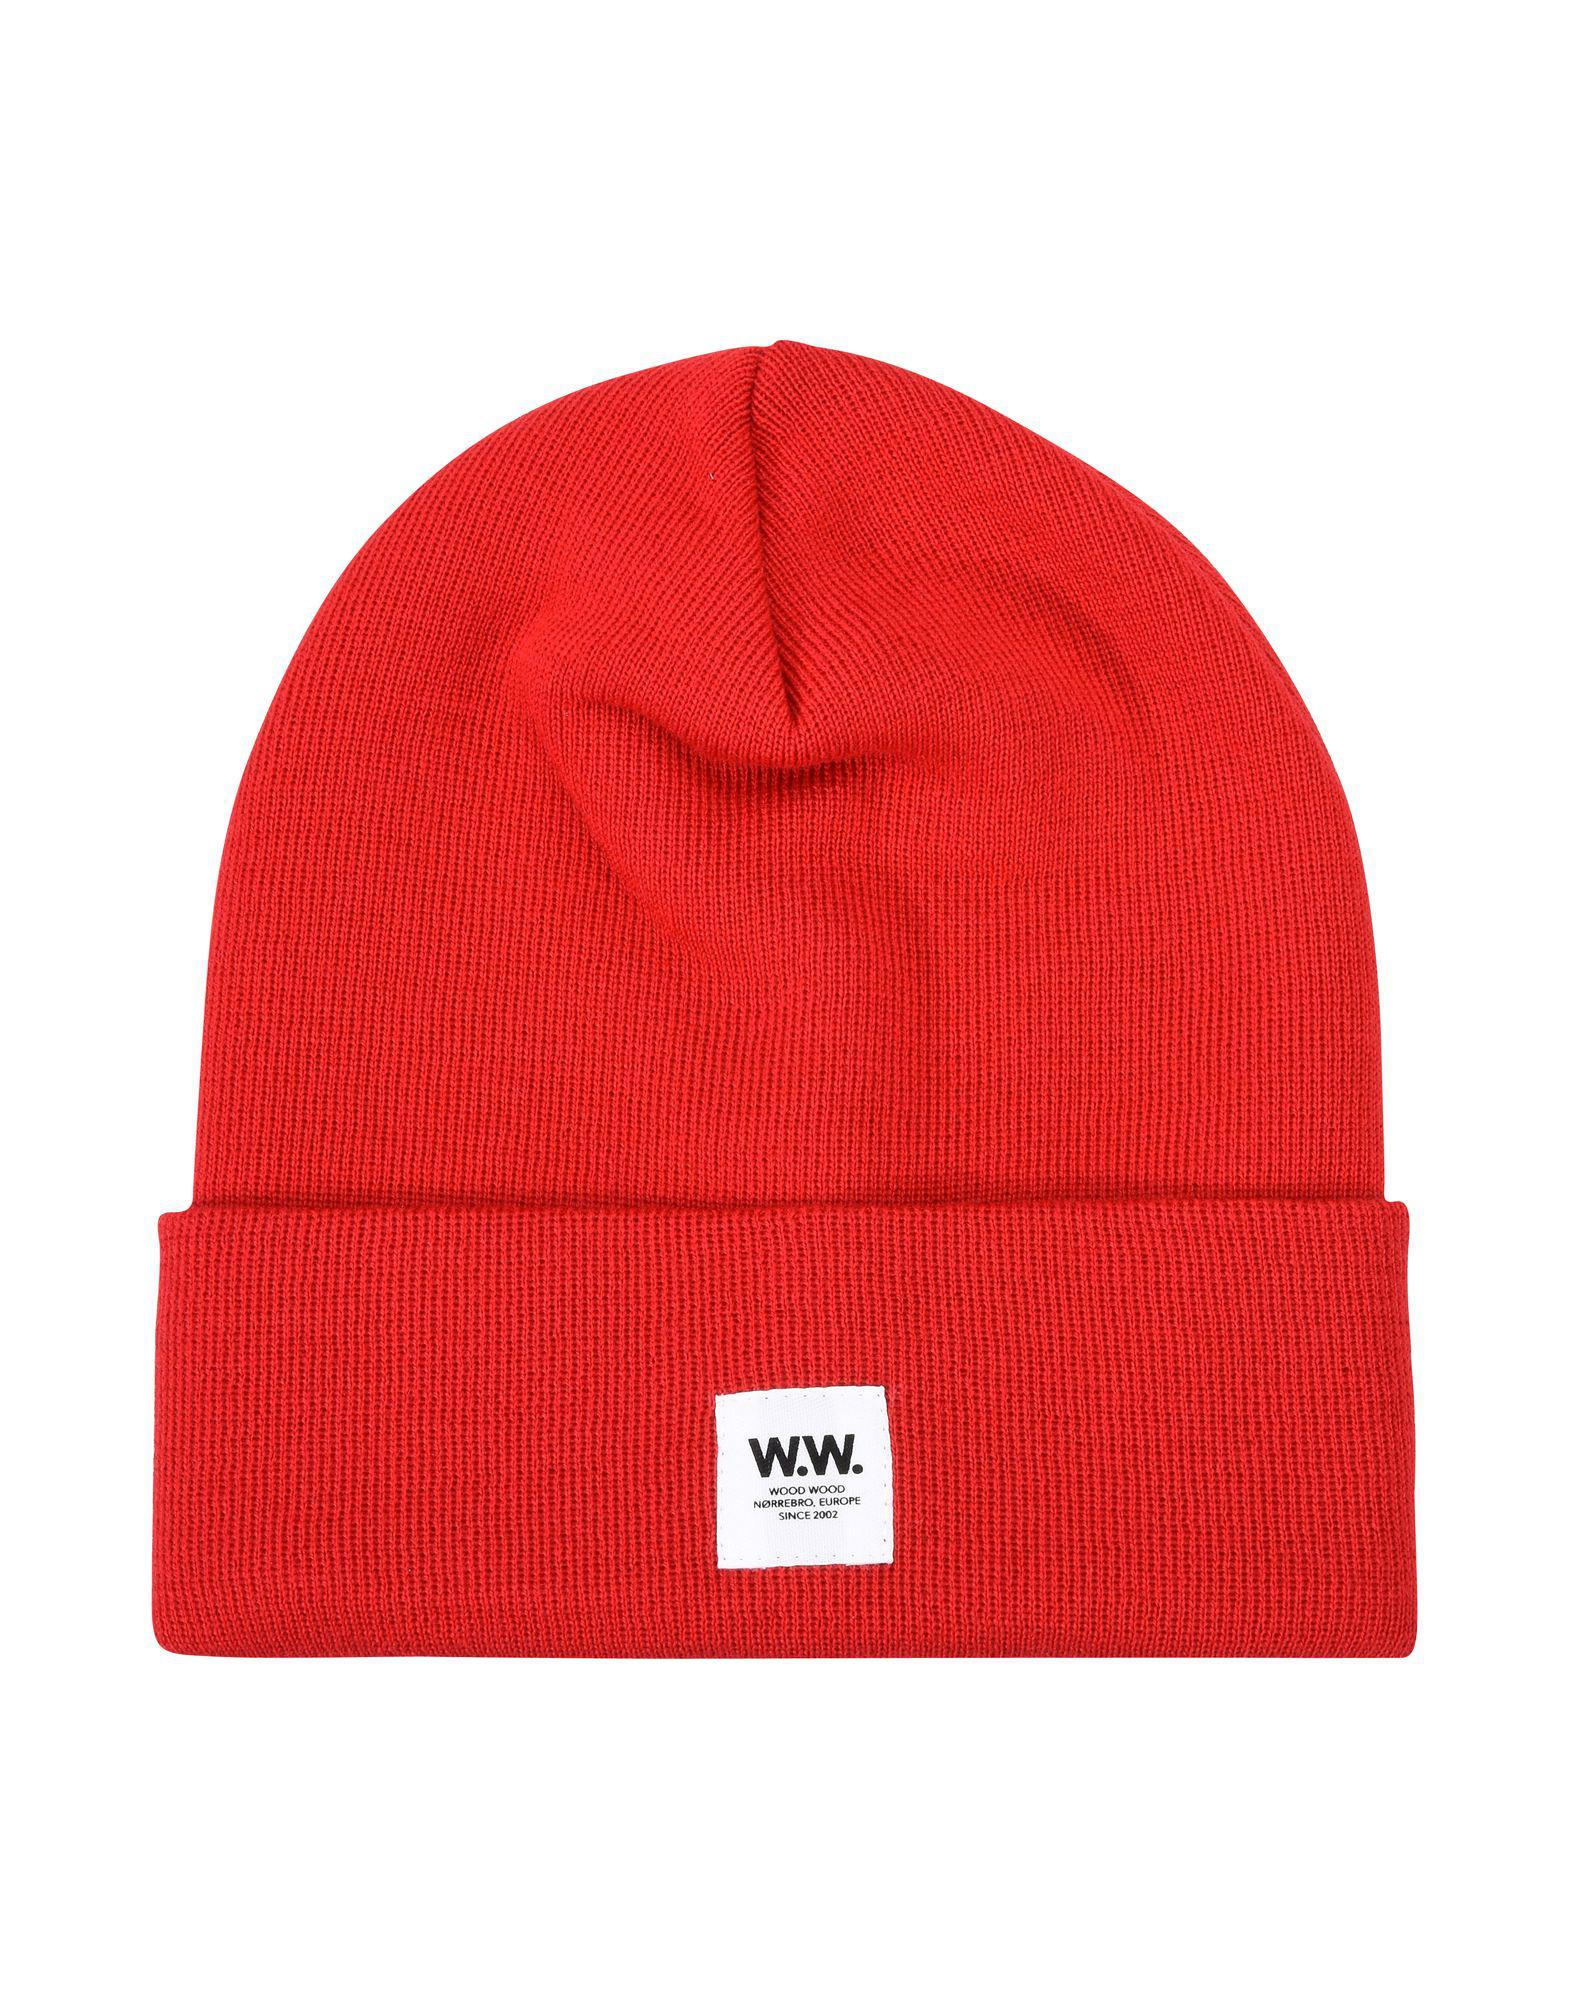 Lyst - WOOD WOOD Hat in Red for Men 53905509d687